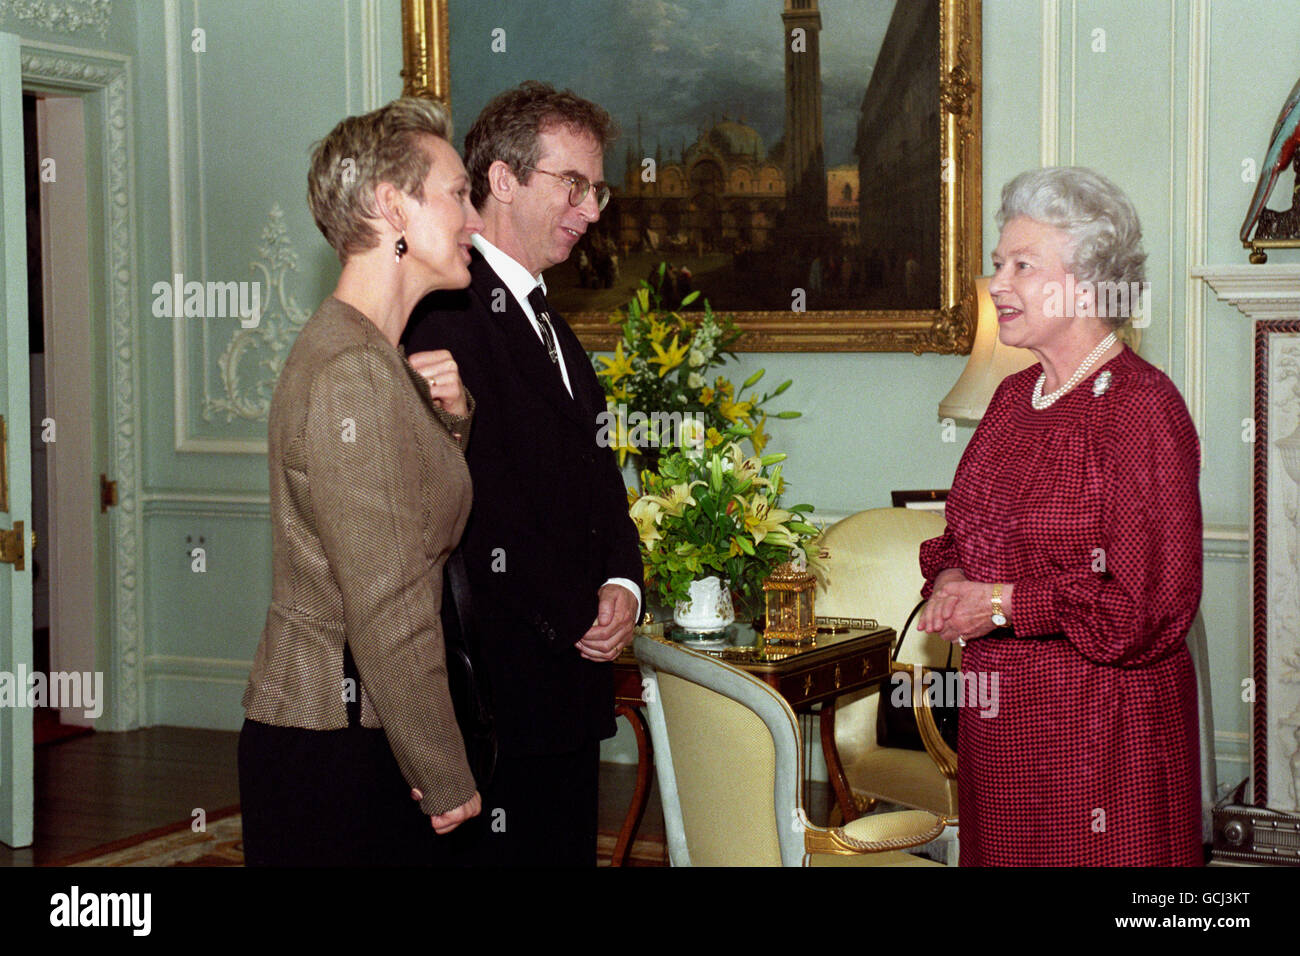 QUEEN MEETS PETER CAREY & WIFE - Stock Image